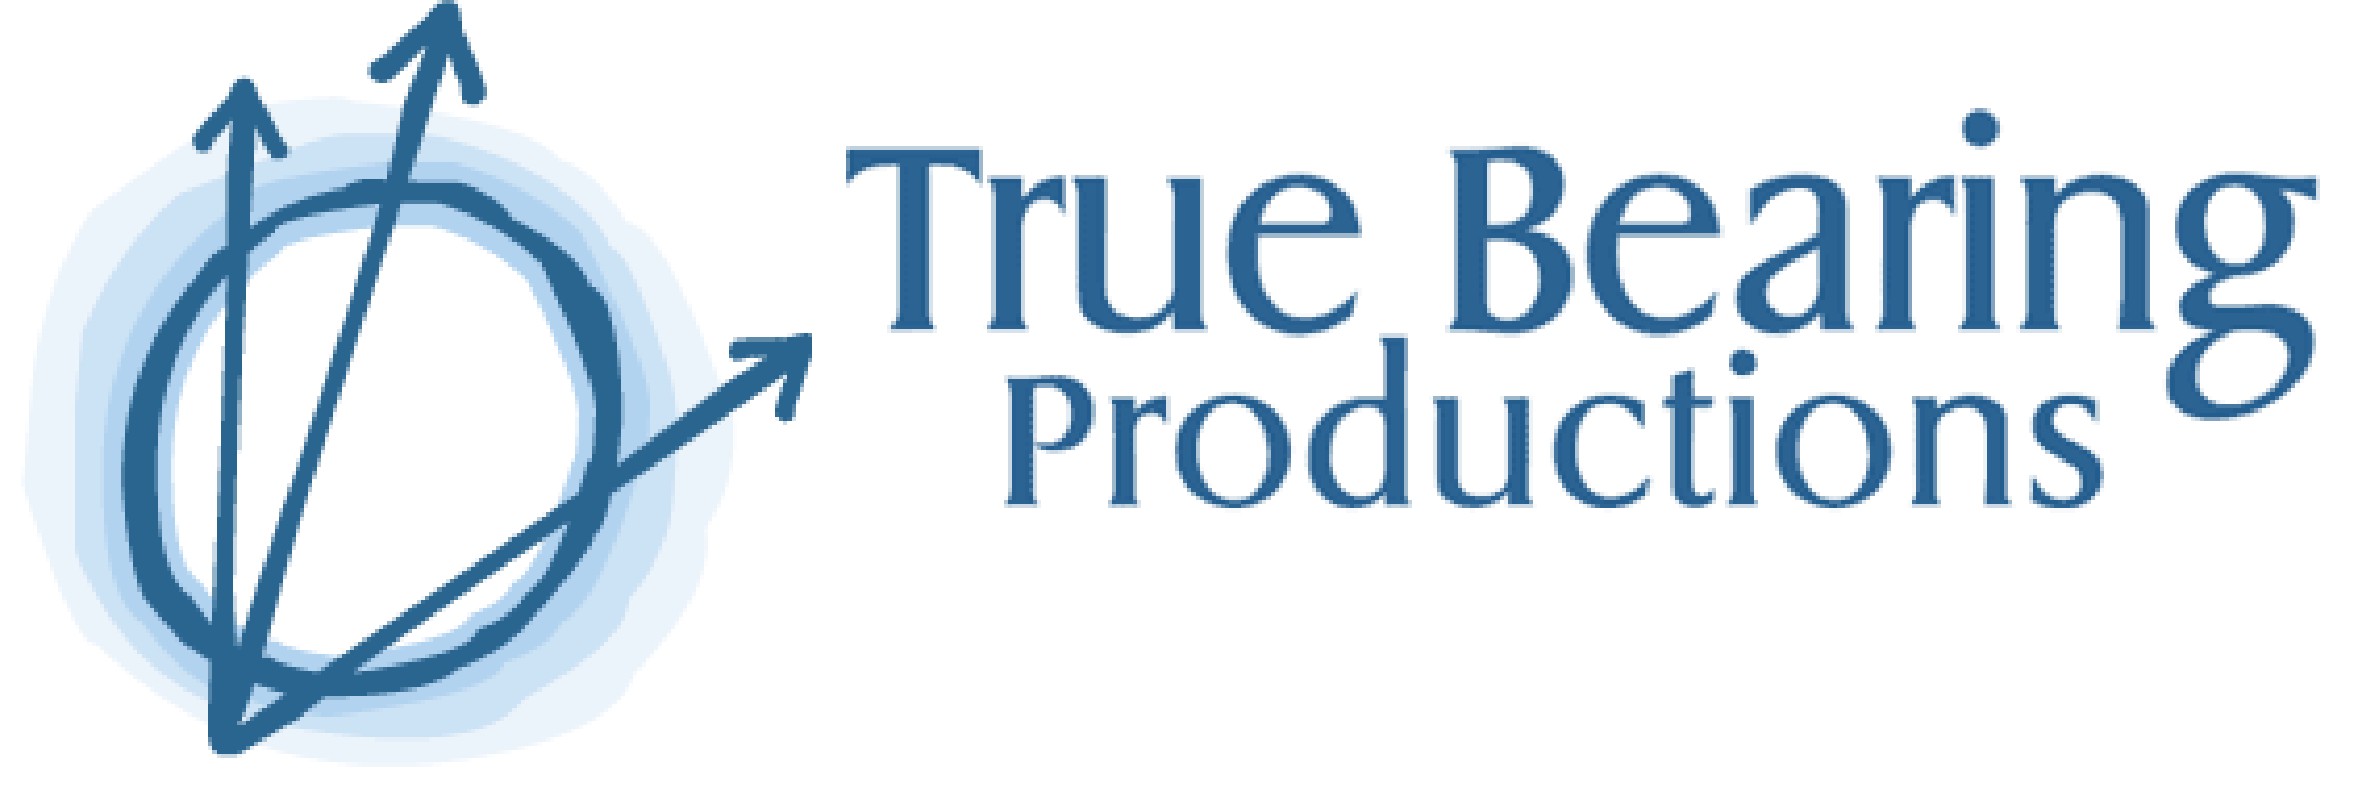 True Bearing Productions